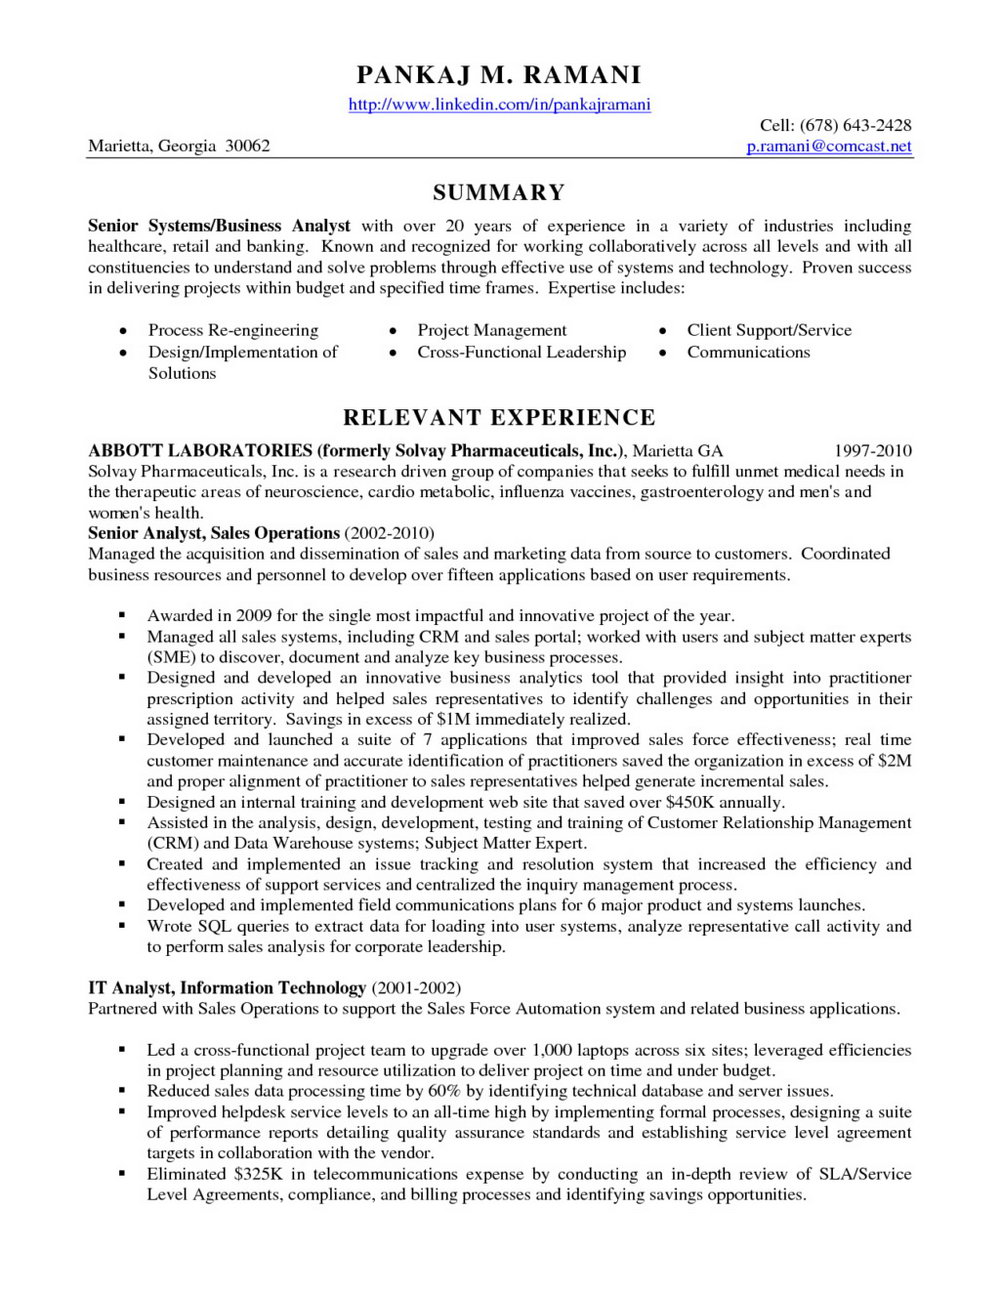 Business Analyst Resume Templates Samples